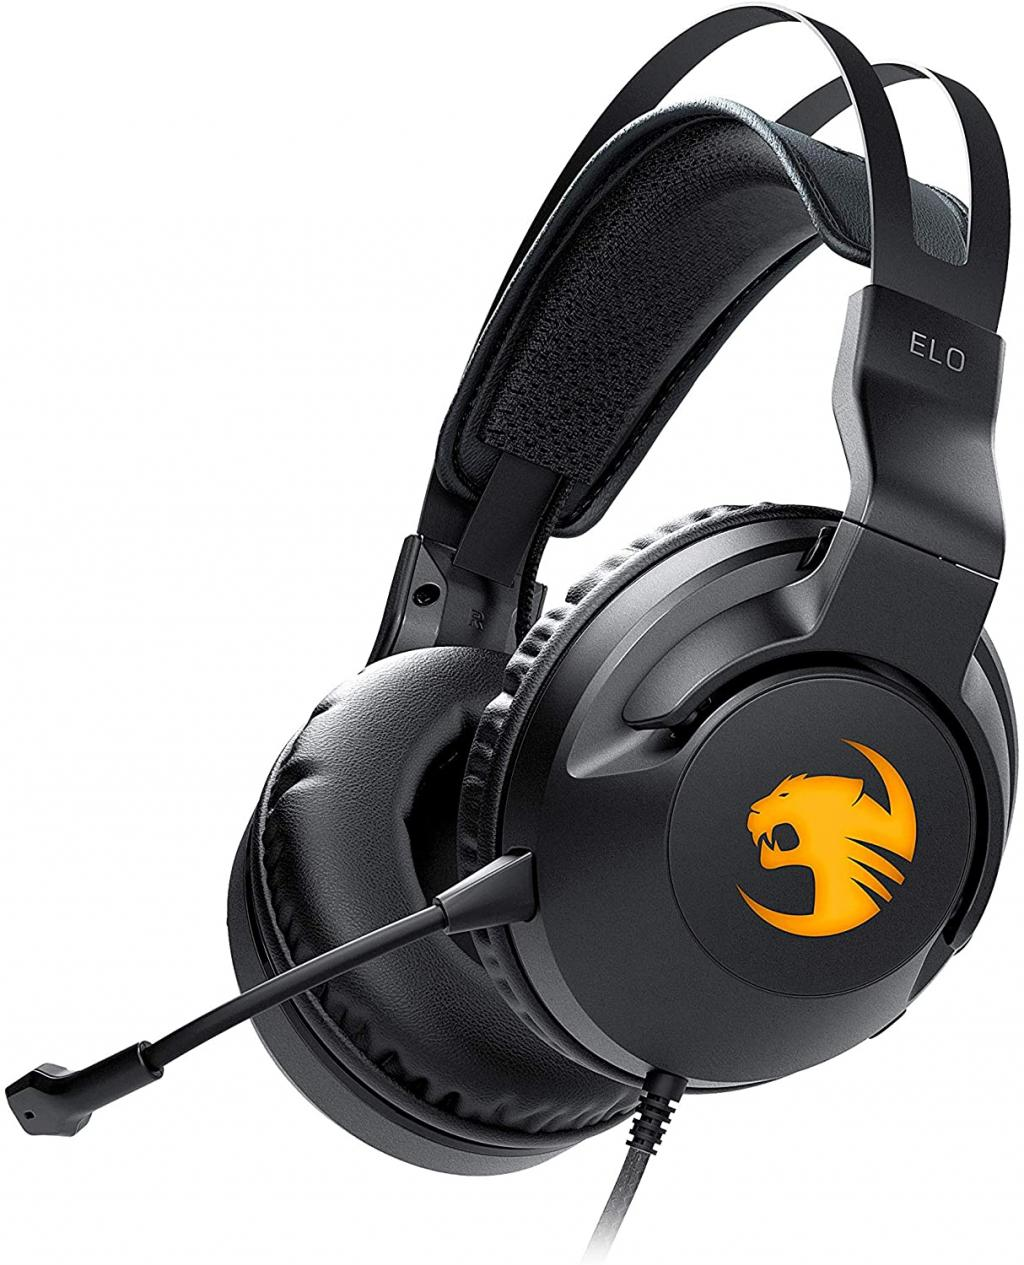 ROCCAT - Elo 7.1 USB Wired Headset_1